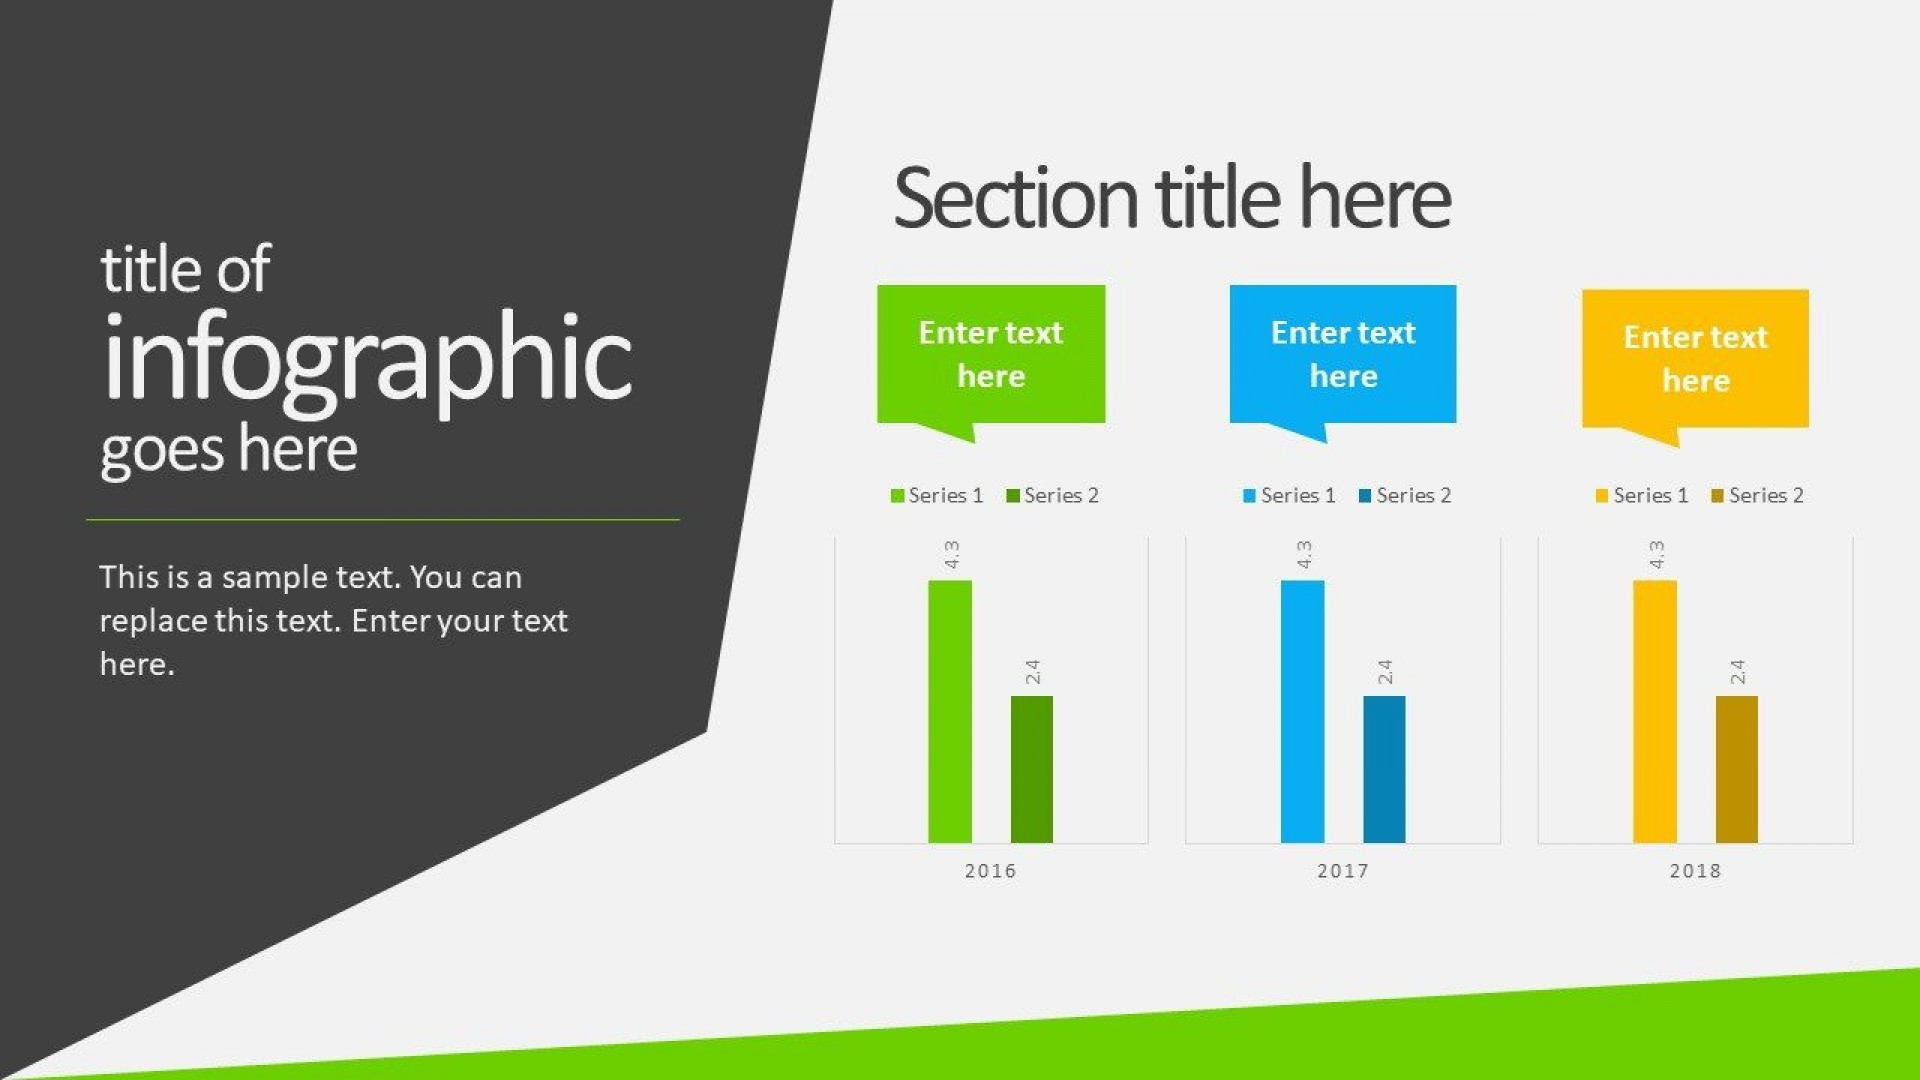 007 Dreaded Free Downloadable Powerpoint Template High Def  Templates Download Animated Background Design Theme1920